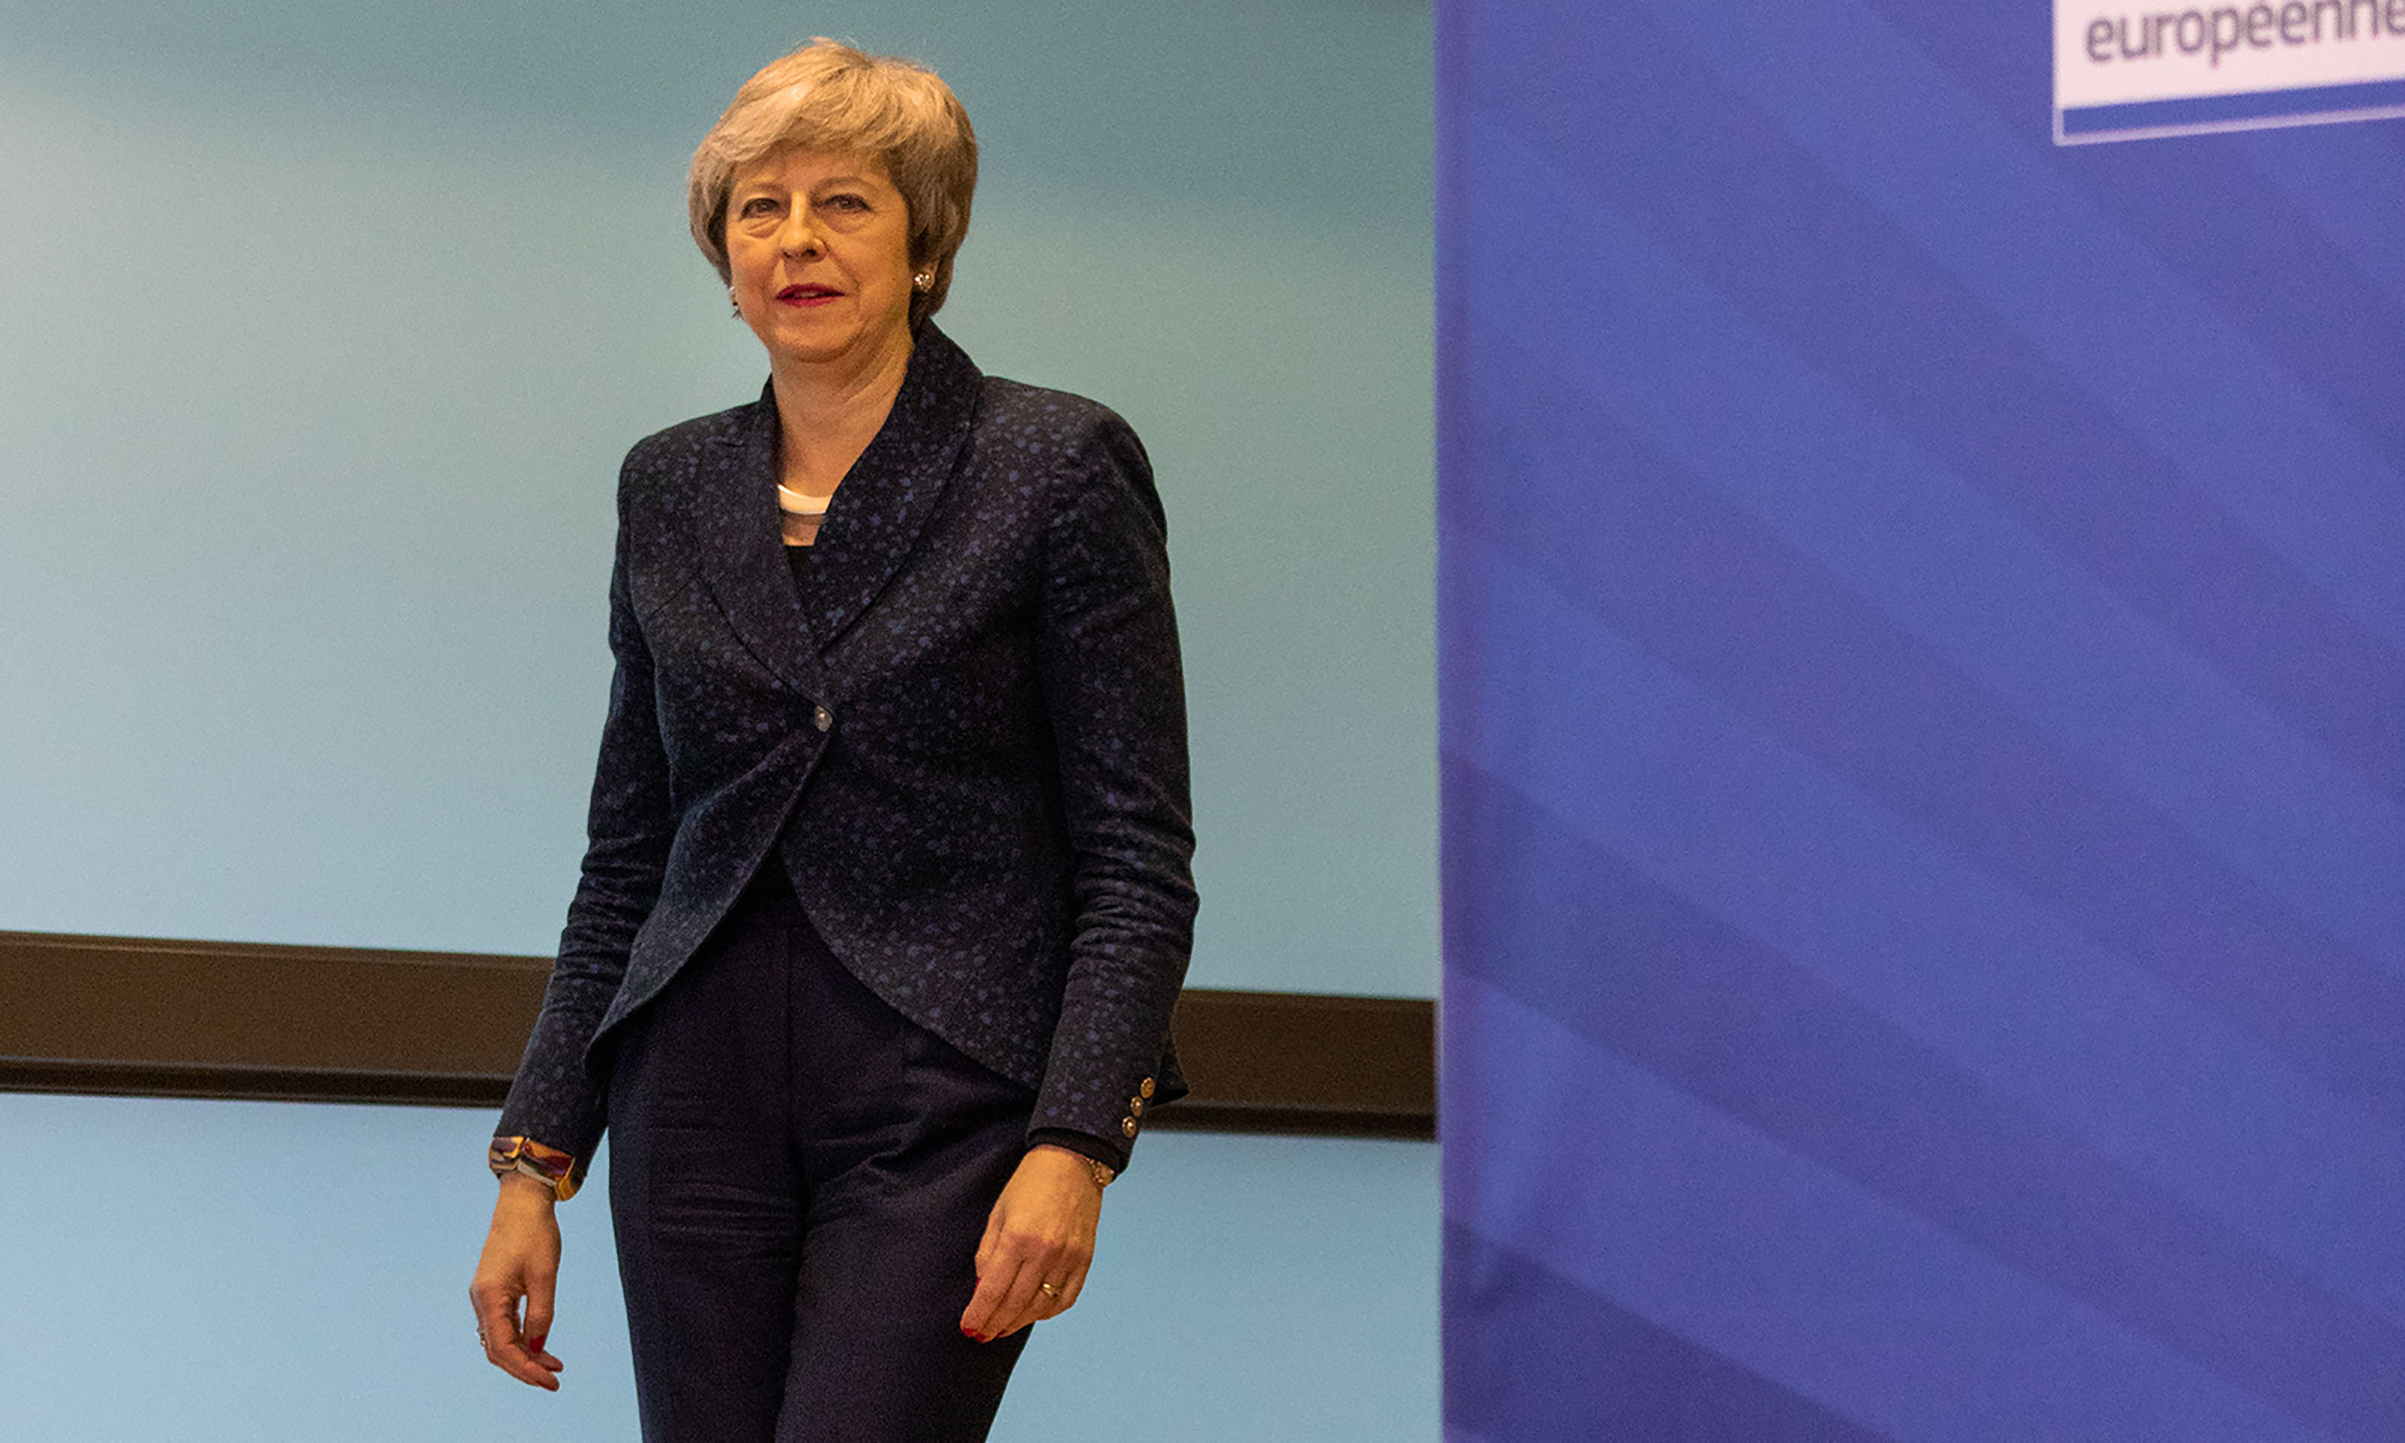 'I know there is a desire for a new approach and new leadership.' — Theresa May, in a March 27 speech to Conservative lawmakers